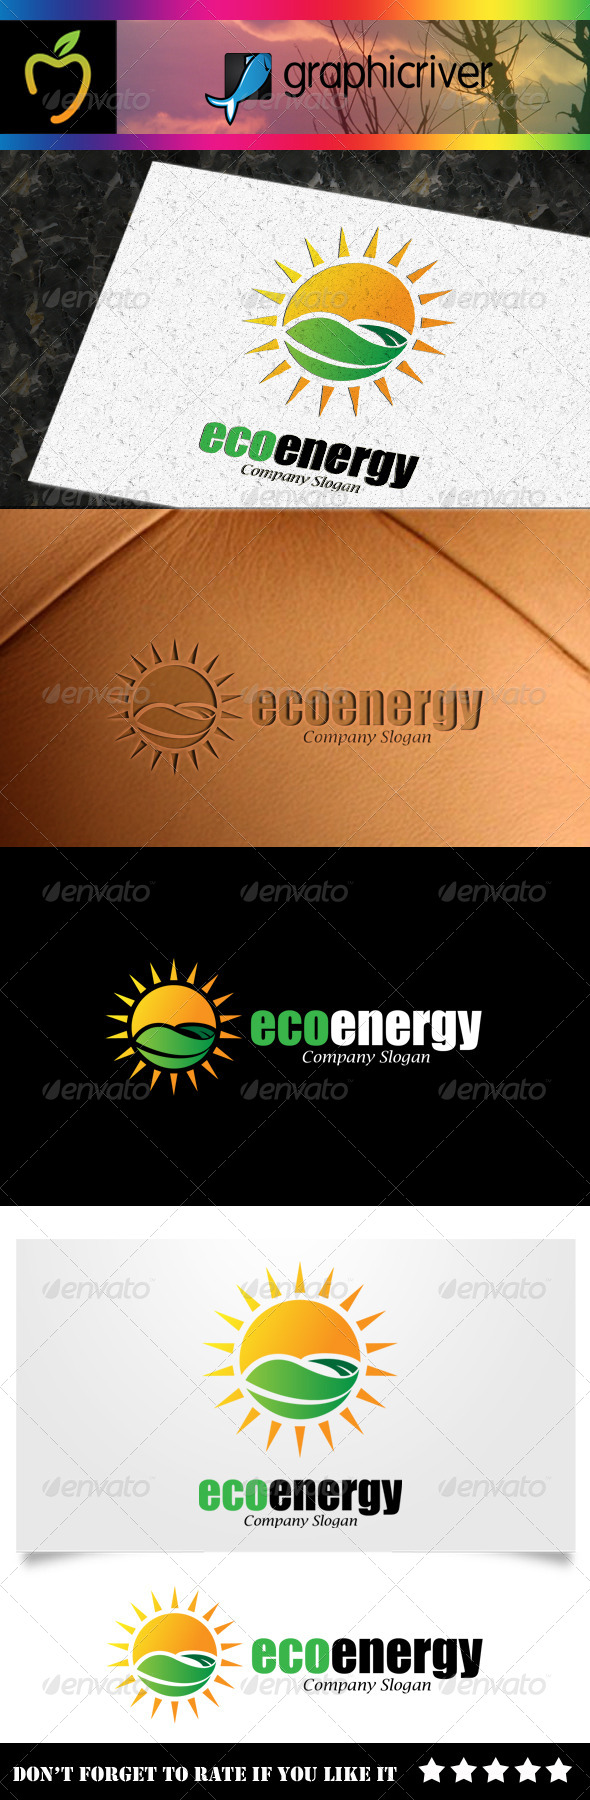 GraphicRiver Eco Energy Logo 7894464